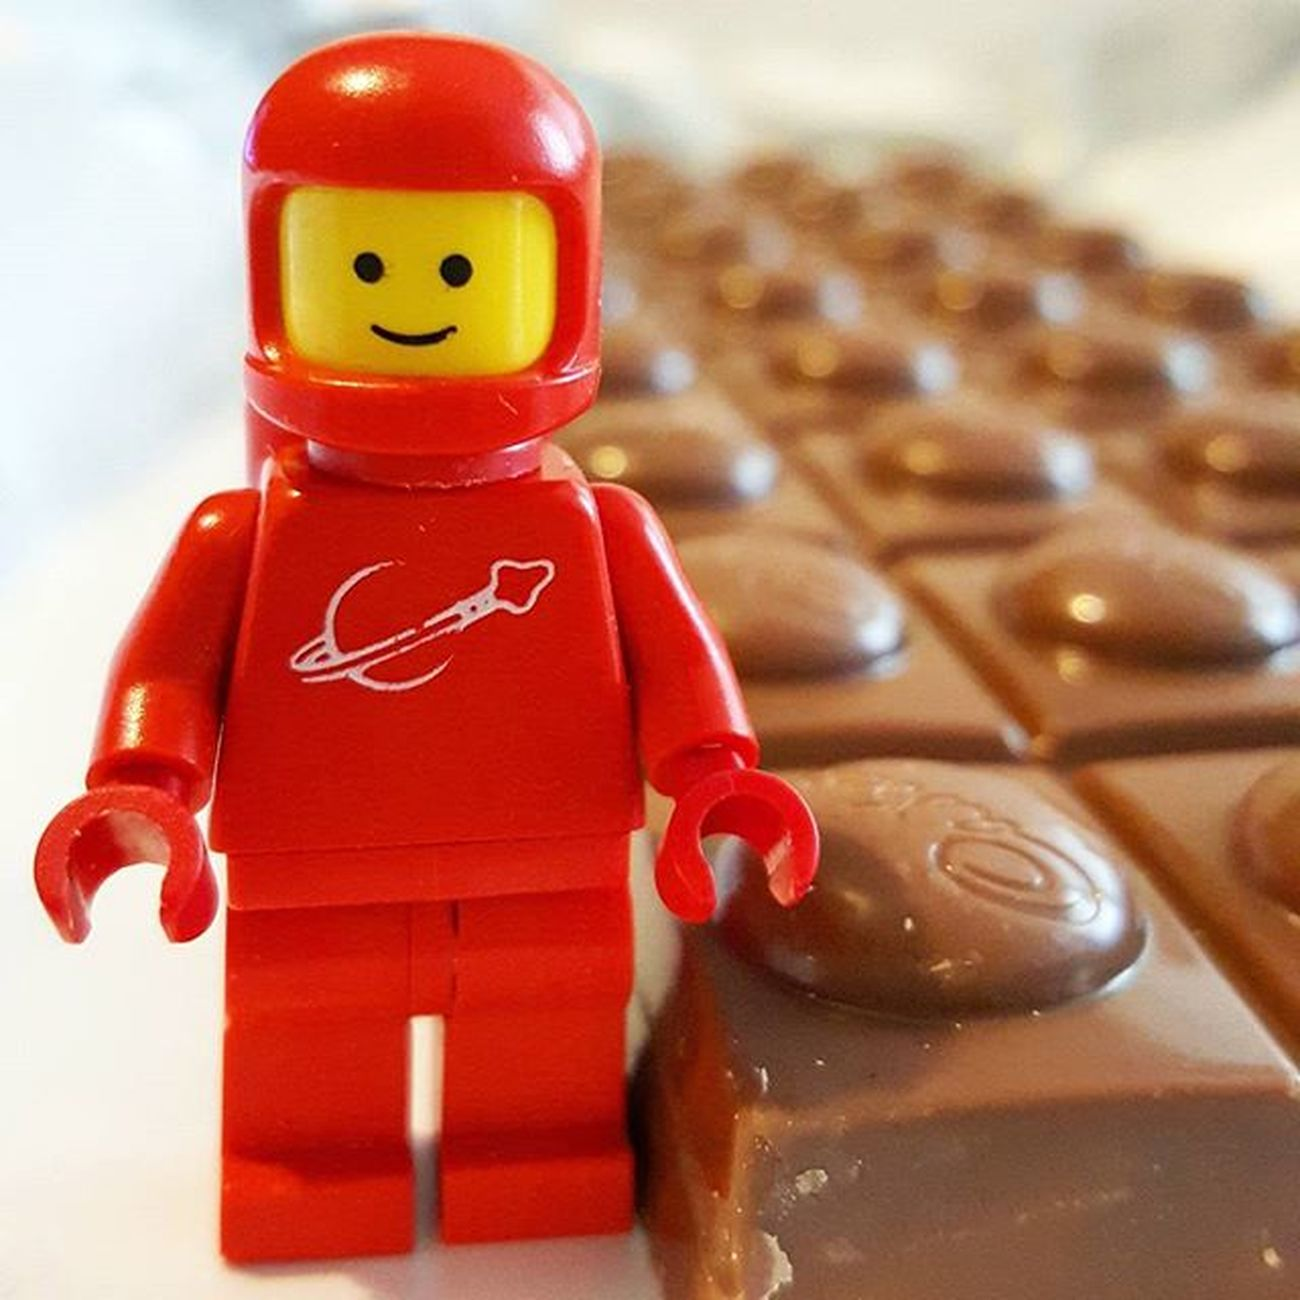 "Space Food 1980 Something Space Guy approves of the ""Lego block choc' (aka Dairy Milk - Big Taste). 😅👍 1980somethingspaceguy Legoblockchoc Chocolate Cadbury Bigtaste Toffeewholenut Yum Spaceman LEGO Classic Vintage Red Authentic 1979 Novisor Legography Brickify Generous Afol Quickedit Astronomy Celestialswag Childhood Haha Fun abstract legogram instalego retro"